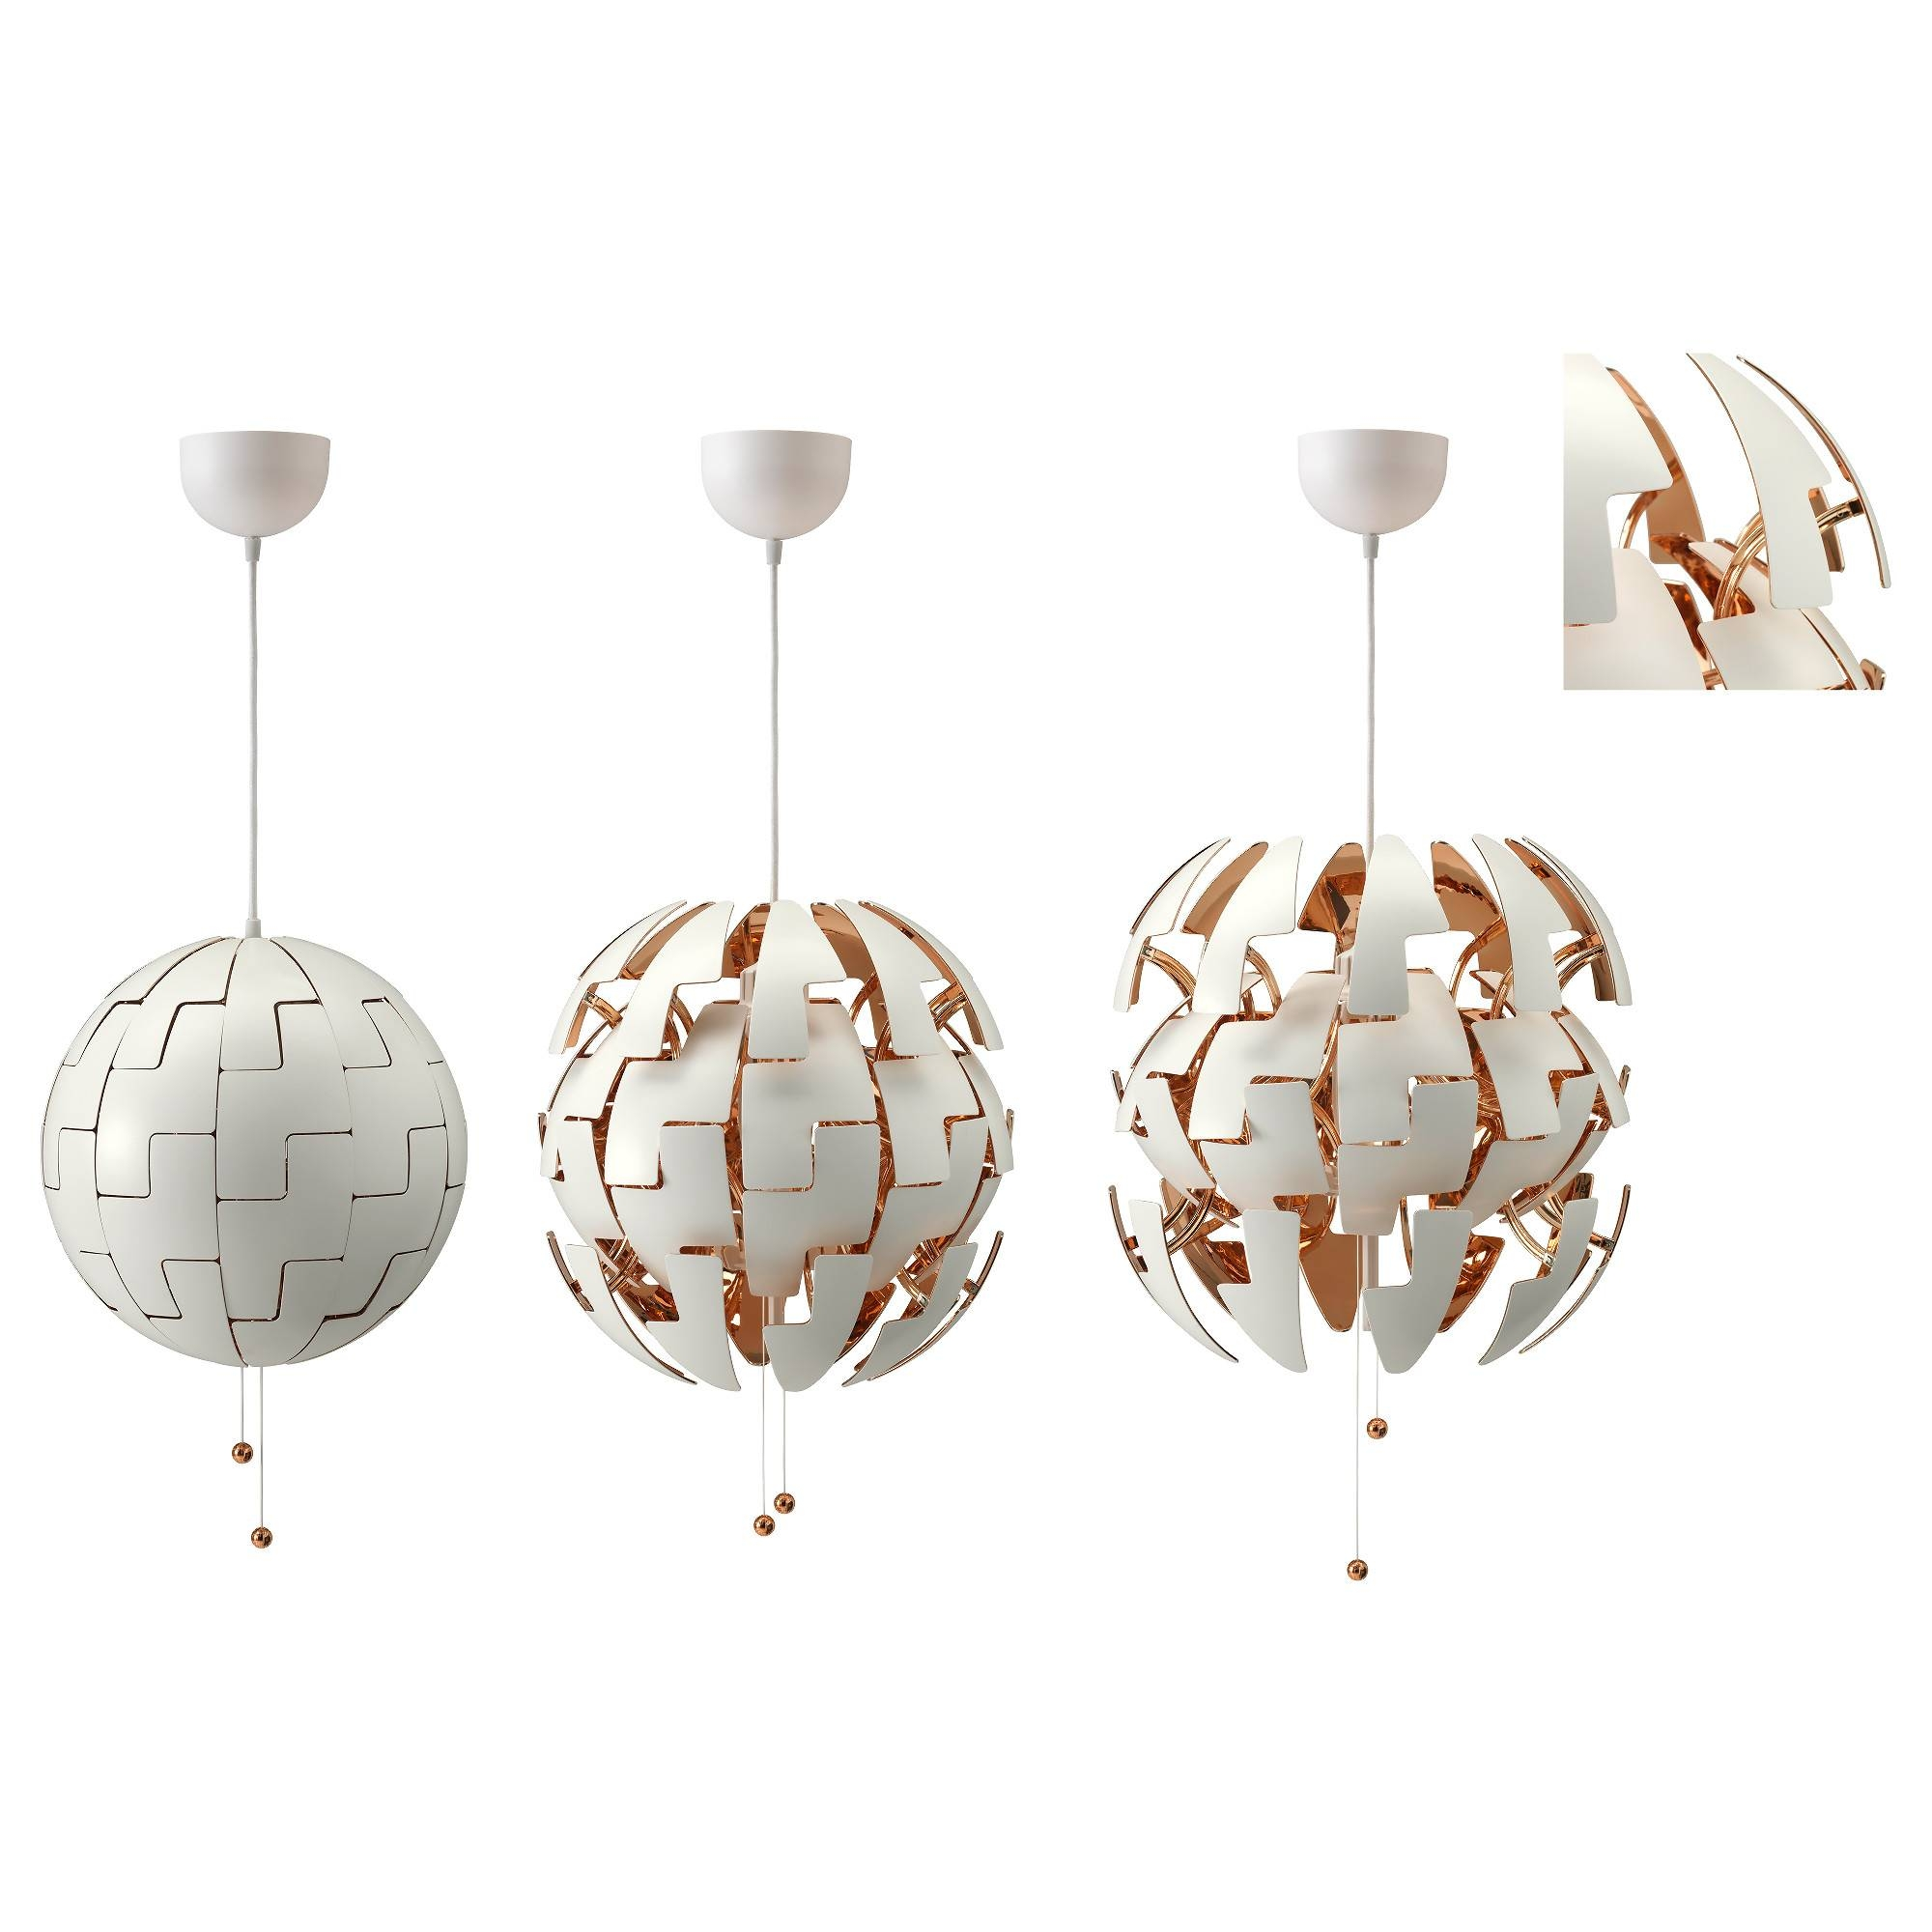 Ikea Ps 2014 Pendant Lamp - White/copper Color - Ikea in Ikea Pendant Lights Fixtures (Image 7 of 15)